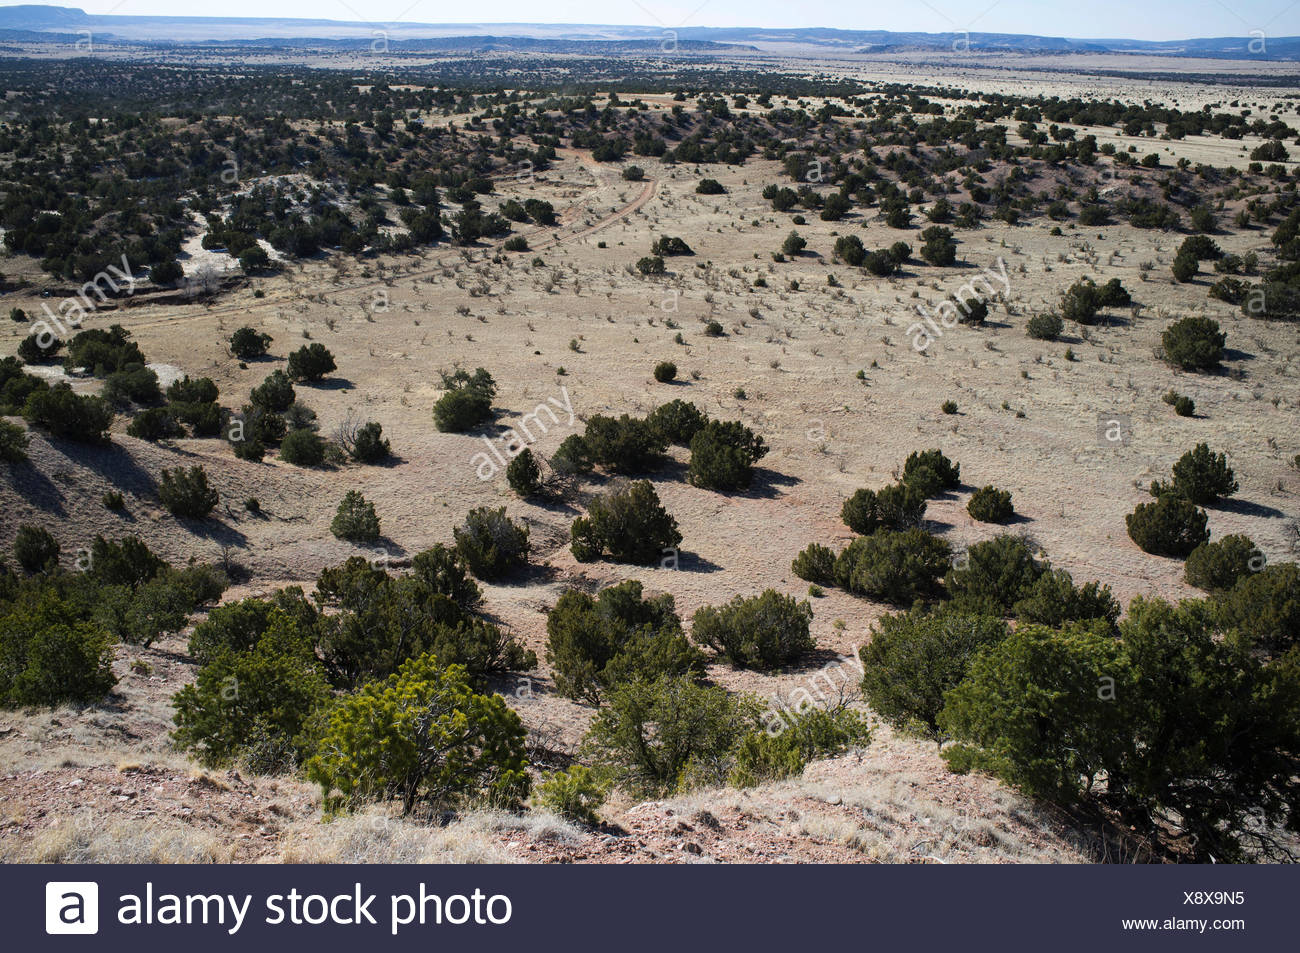 The Galisteo Basin is dotted with sparse vegetation. - Stock Image